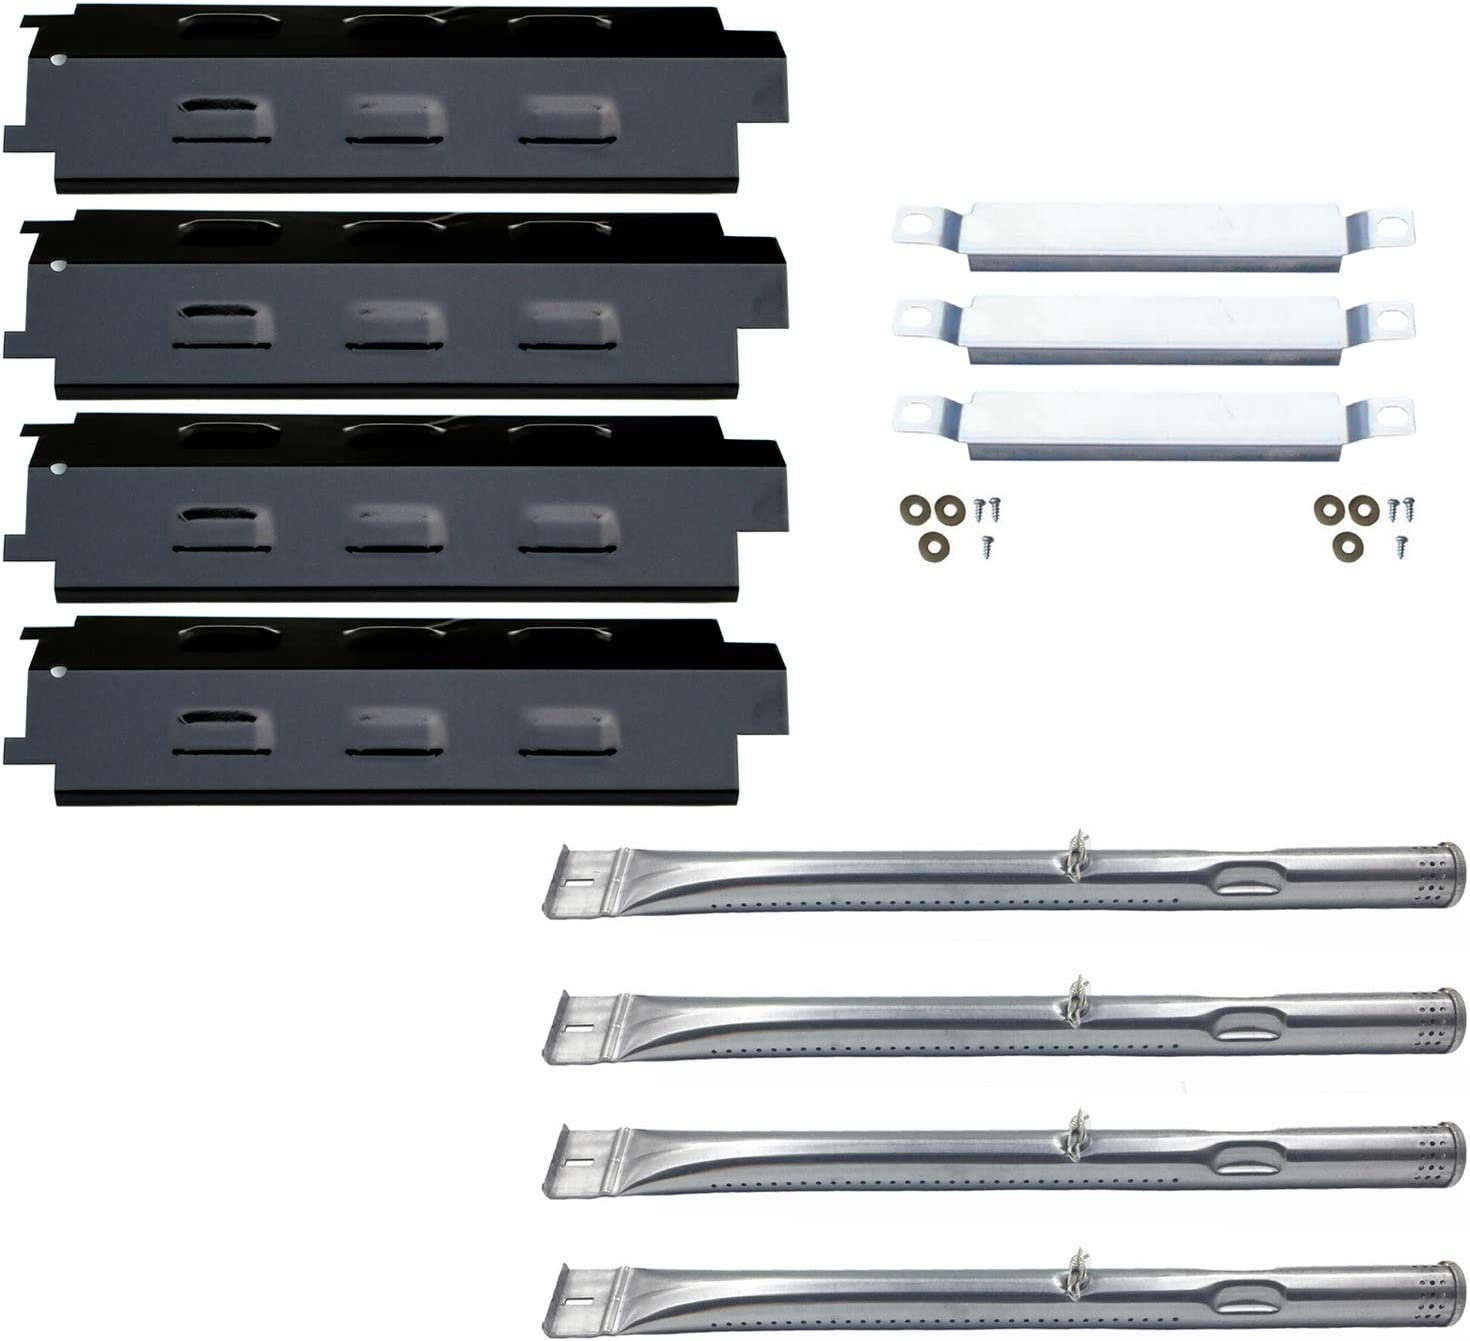 Direct Store Parts Kit DG259 Replacement Charbroil Grill 463436213,463436215; Thermos 466360113 Repair Kit (SS Burner + SS Carry-Over Tubes + Porcelain Steel Heat Plate)